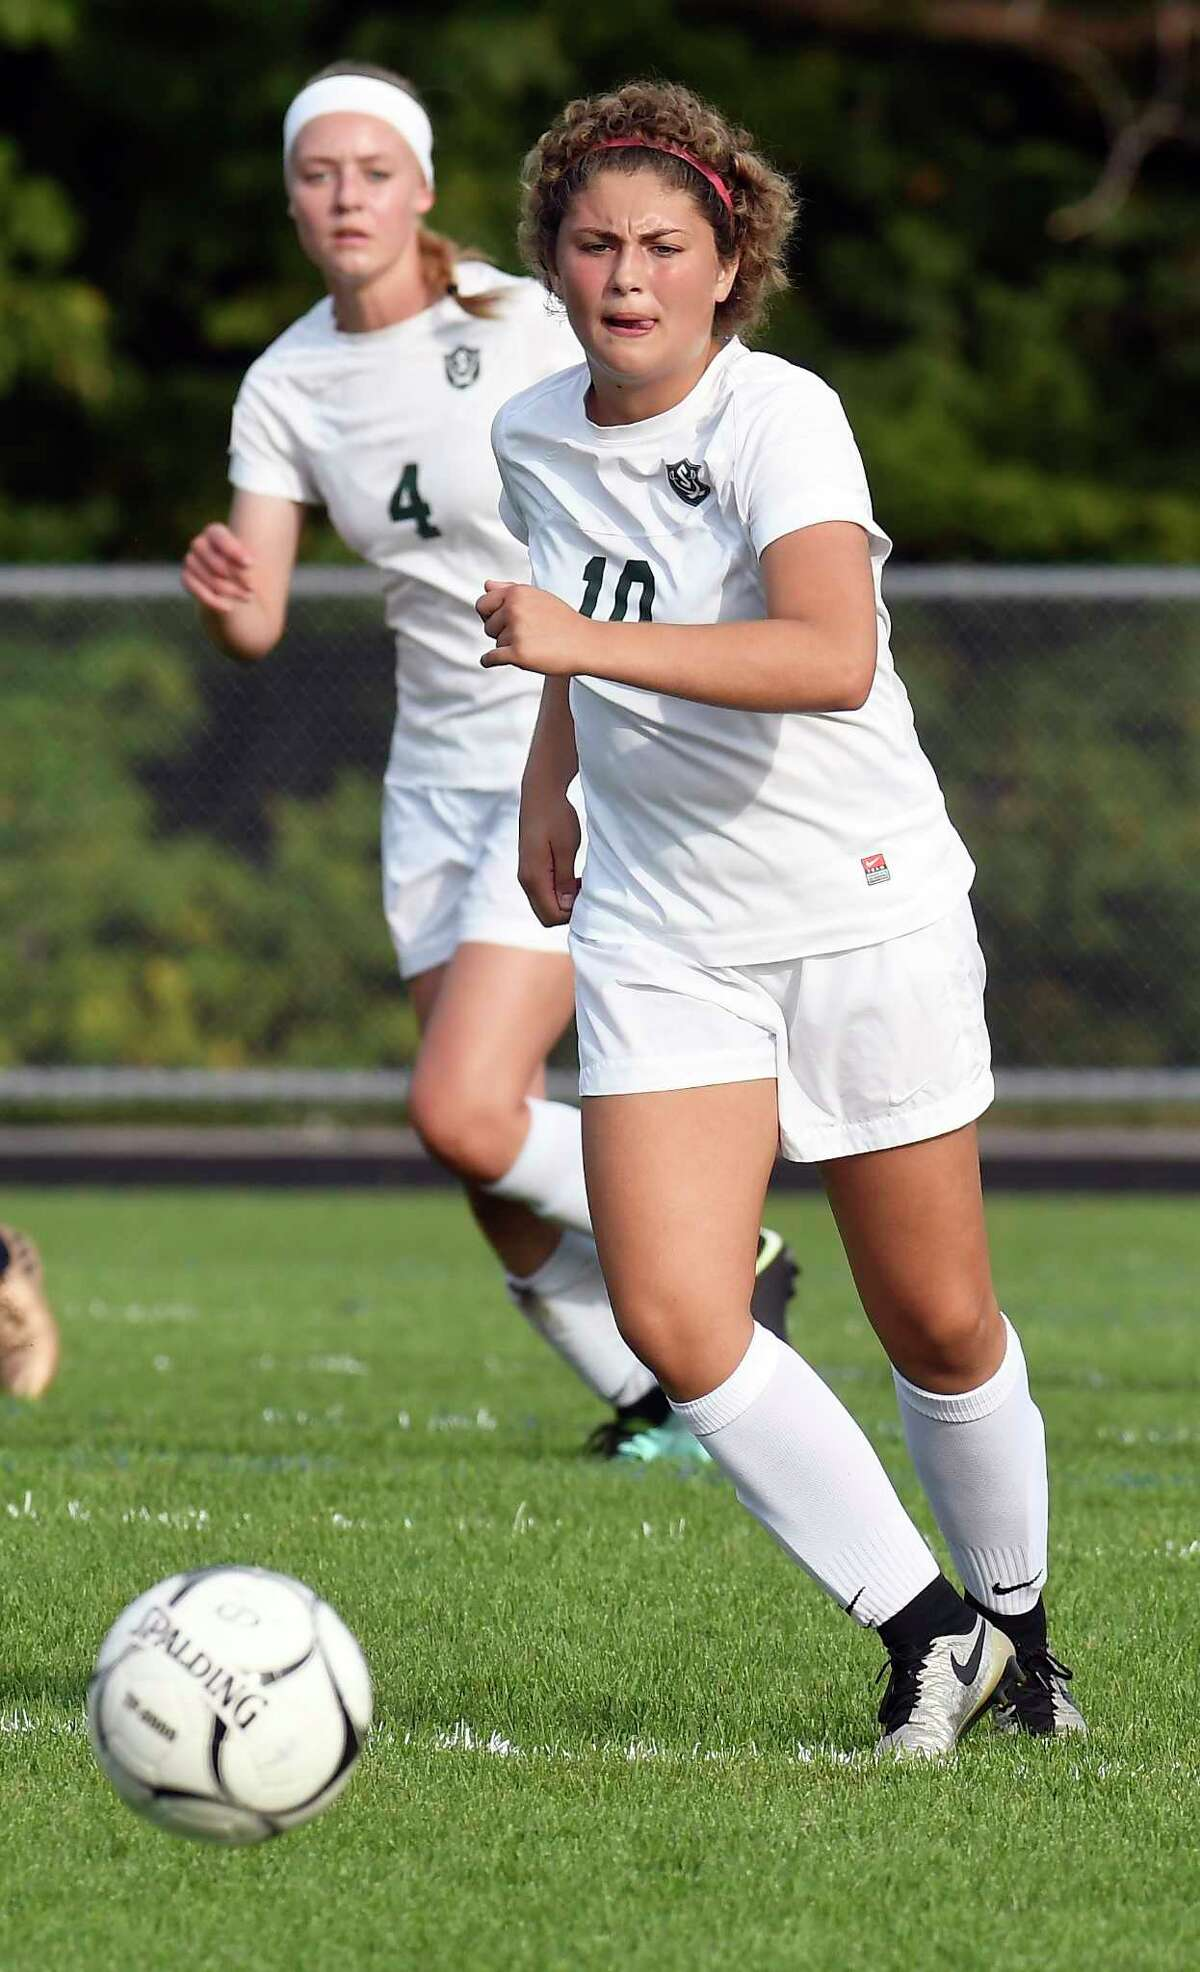 Schalmont's Davia Rossi (10) moves the ball against Holy Names Academy during a Section II Class B girls' high school soccer game in Rotterdam, N.Y., Thursday, Sept. 21, 2017. (Hans Pennink / Special to the Times Union) ORG XMIT: HP105